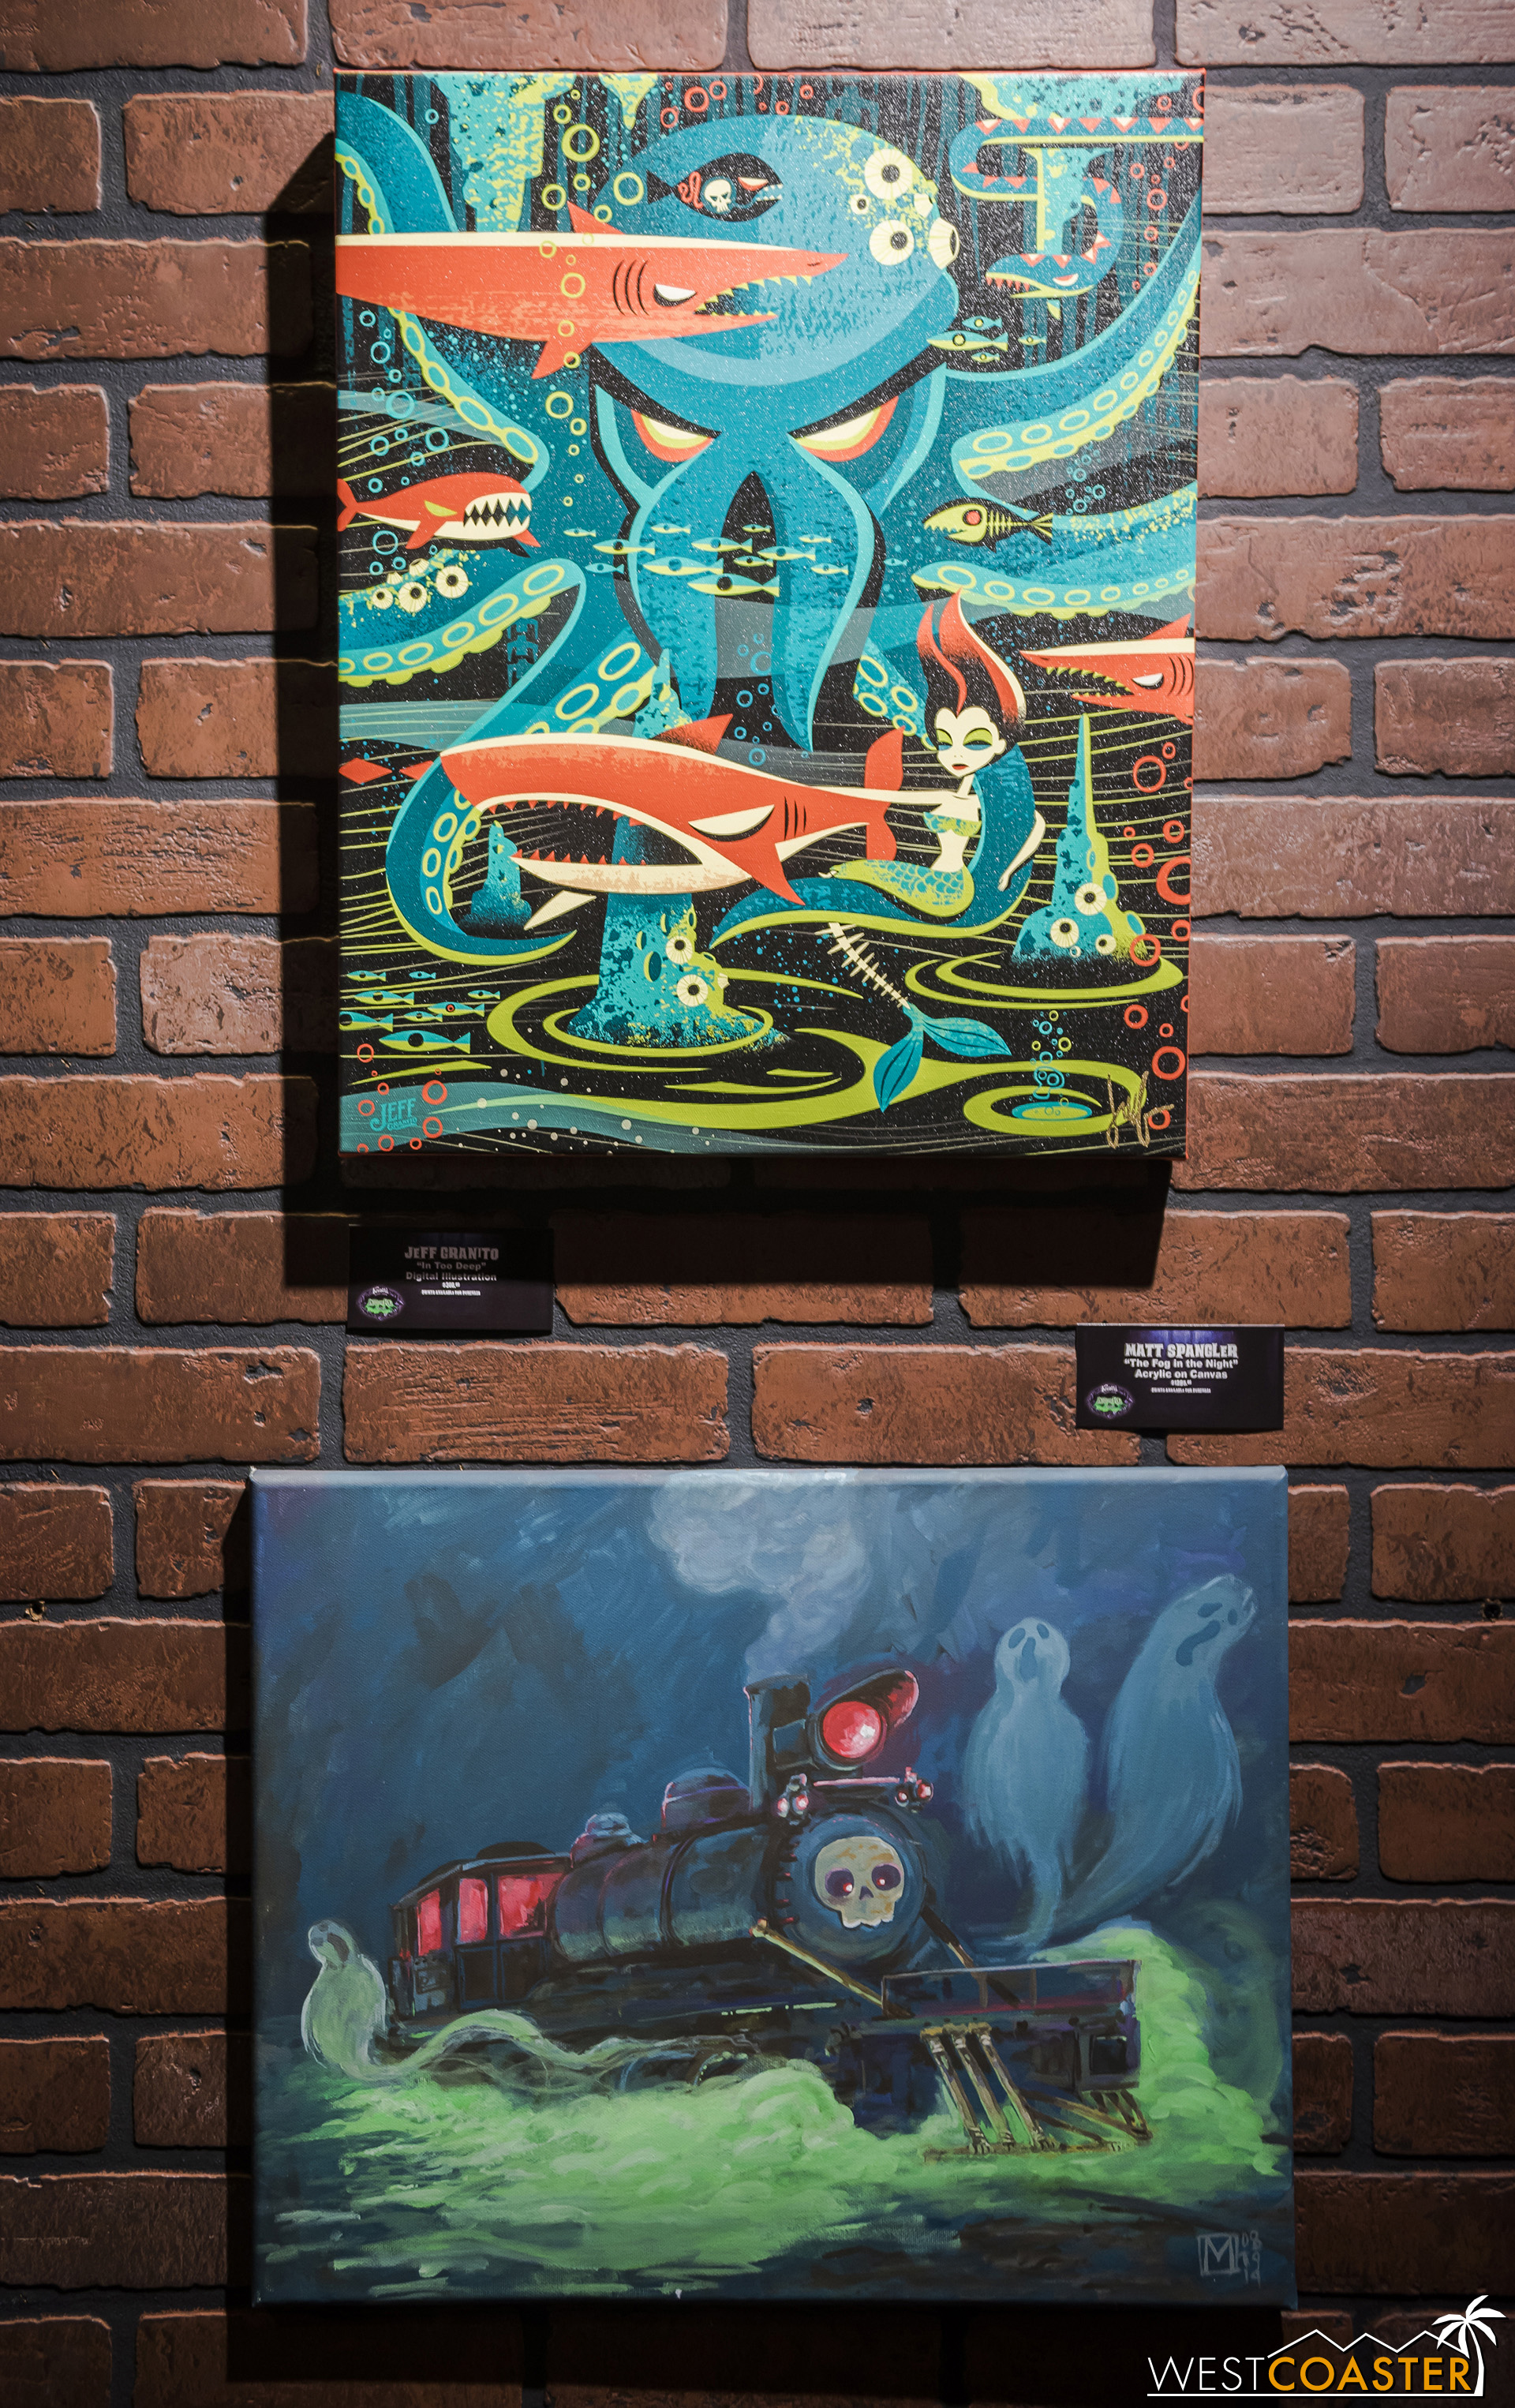 Tiki artist, Jeff Granito contributed to the gallery as well!